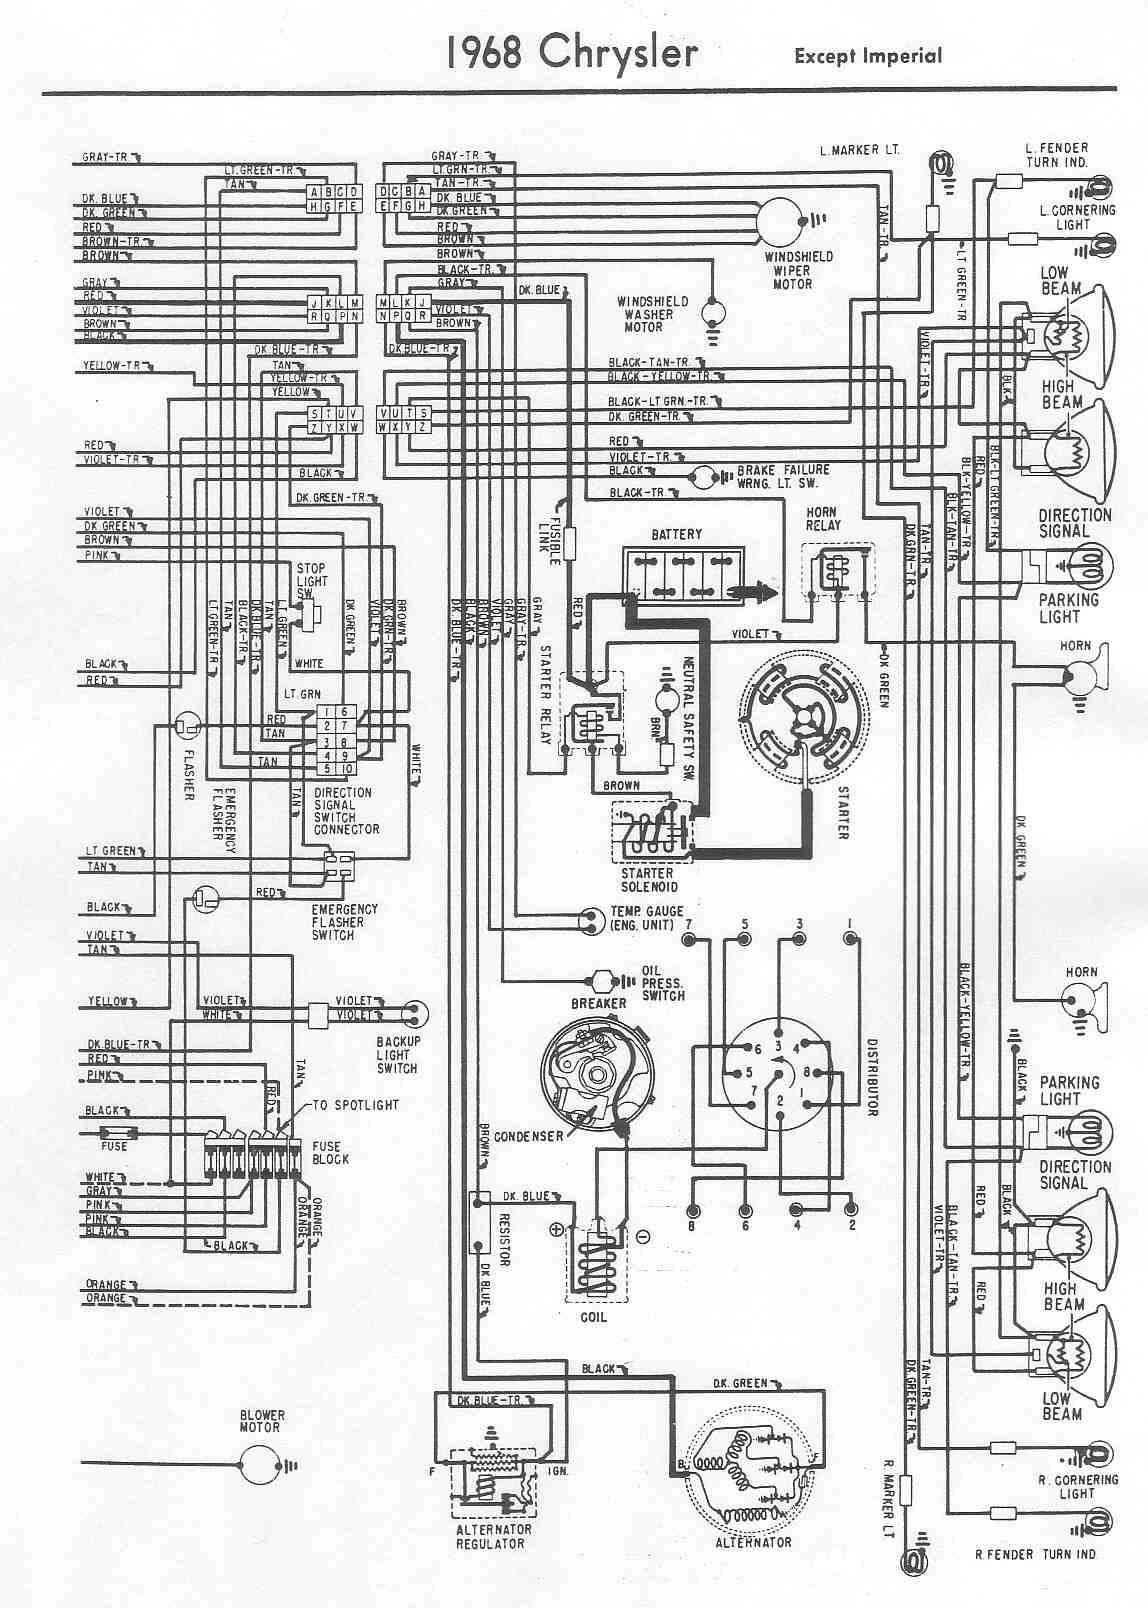 1953 dodge pickup wiring diagram wiring diagrams rh briefy co Chrysler to Chevy Wiring Harness Chrysler to Chevy Wiring Harness